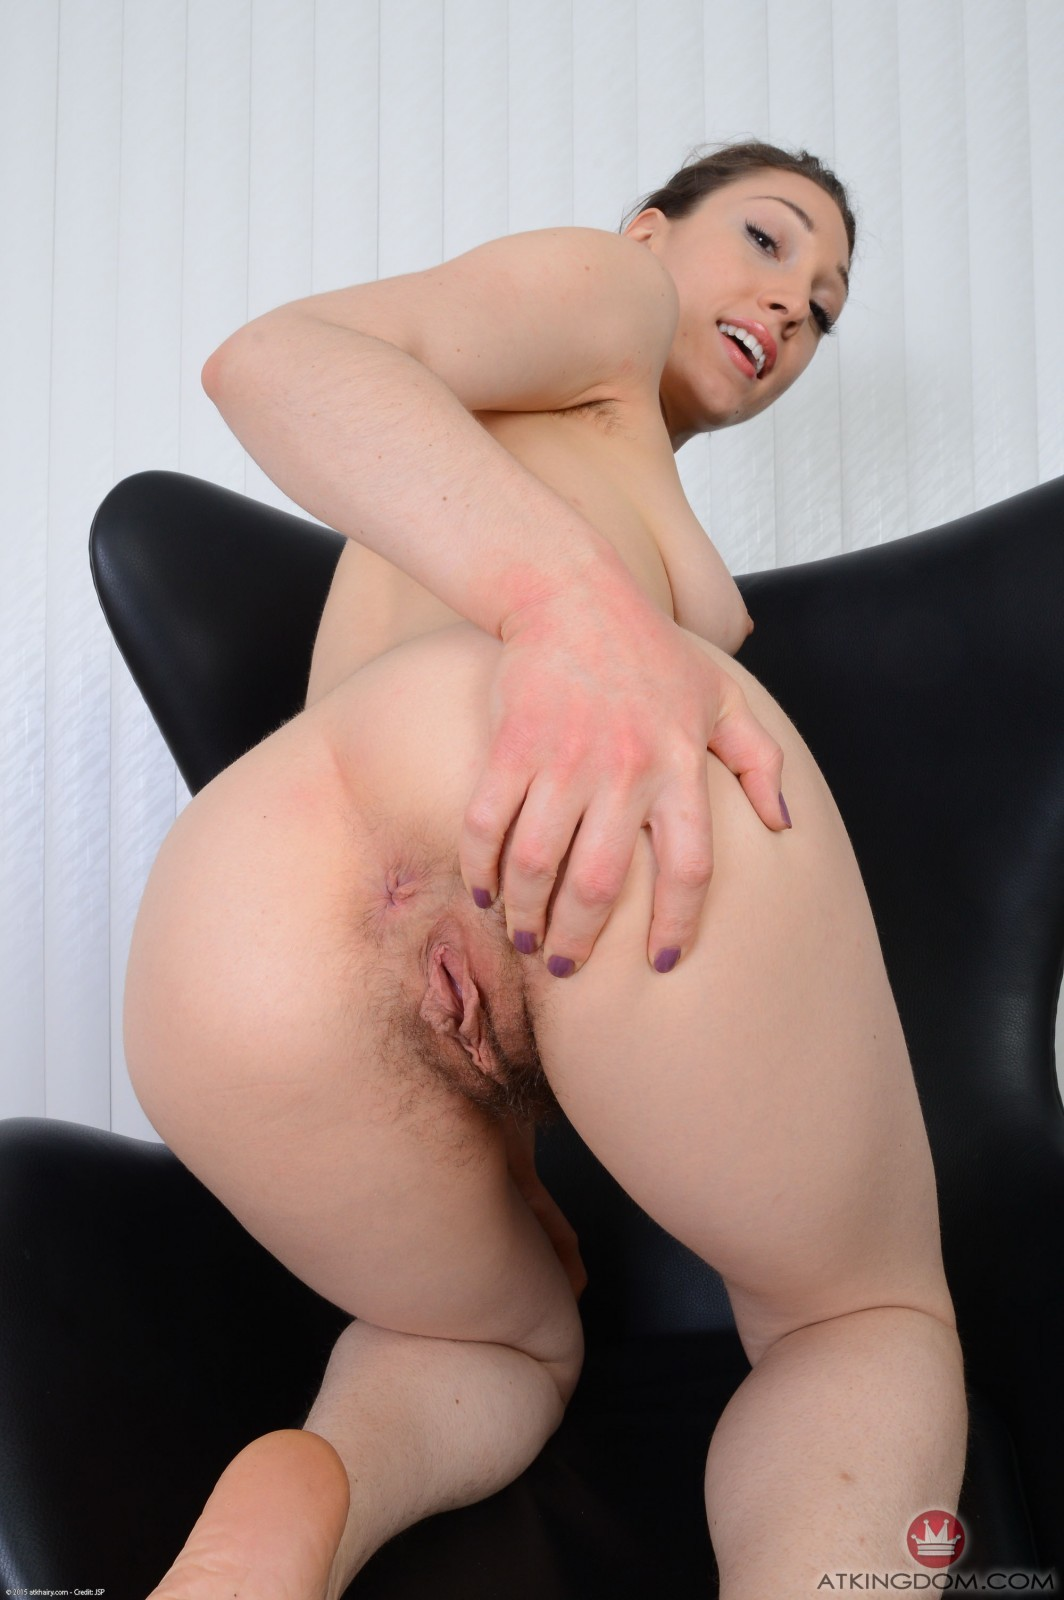 Hairy Pussy Hd